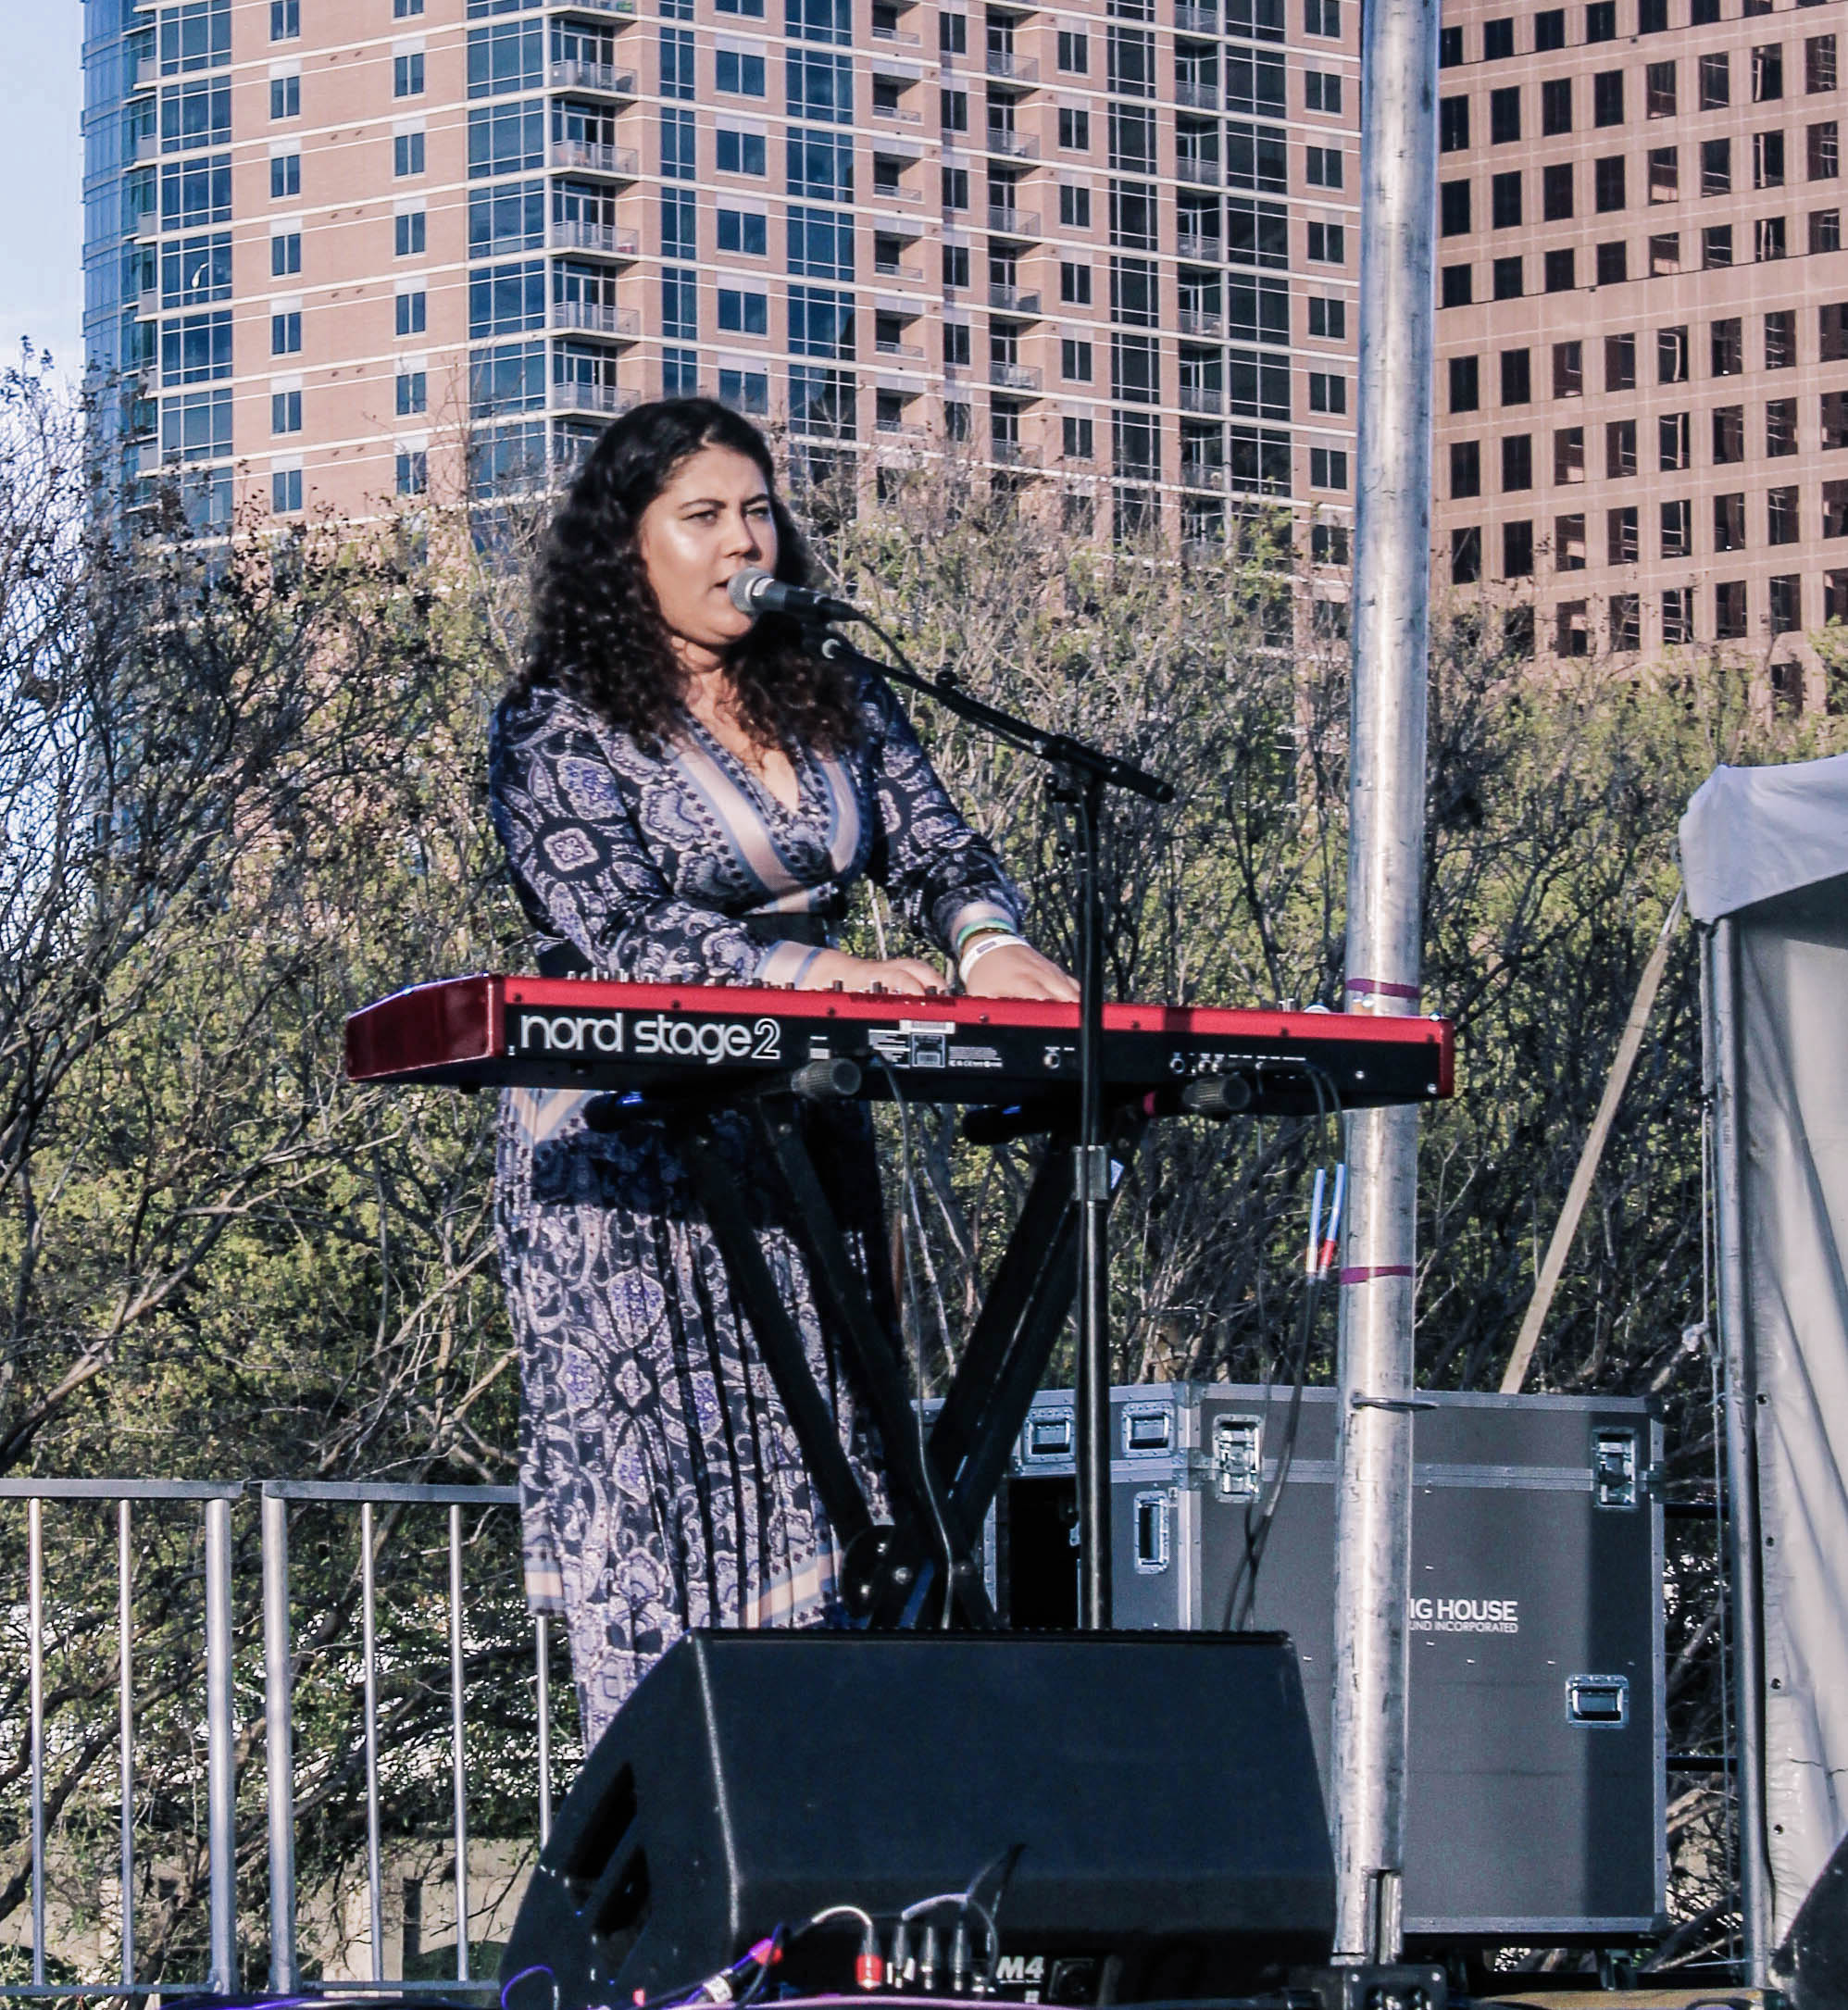 Photo © Concentus Music - Odette at SXSW